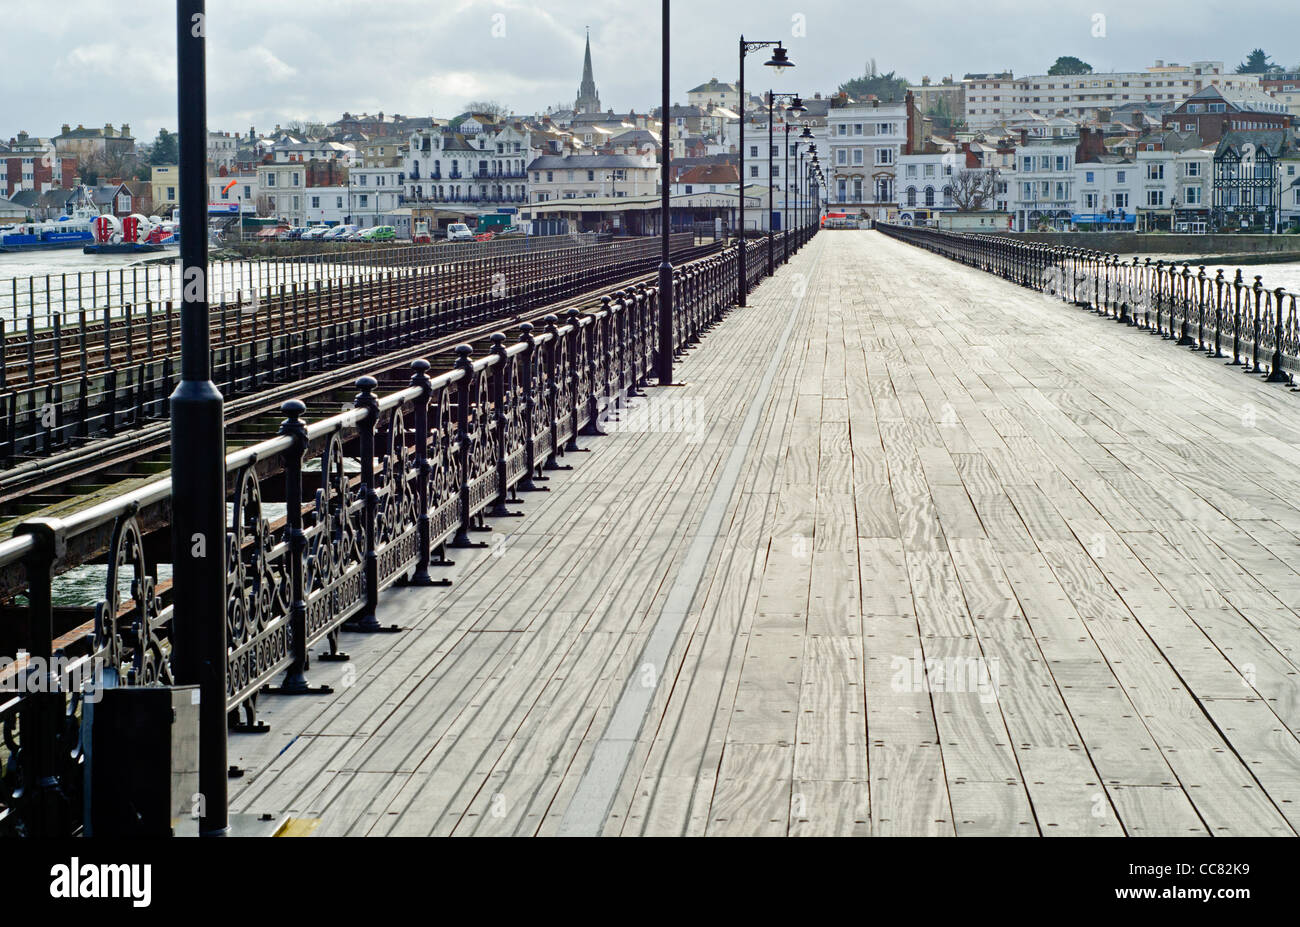 Ryde Pier, the long British wooden pier at Ryde, Isle of Wight, England, UK. - Stock Image